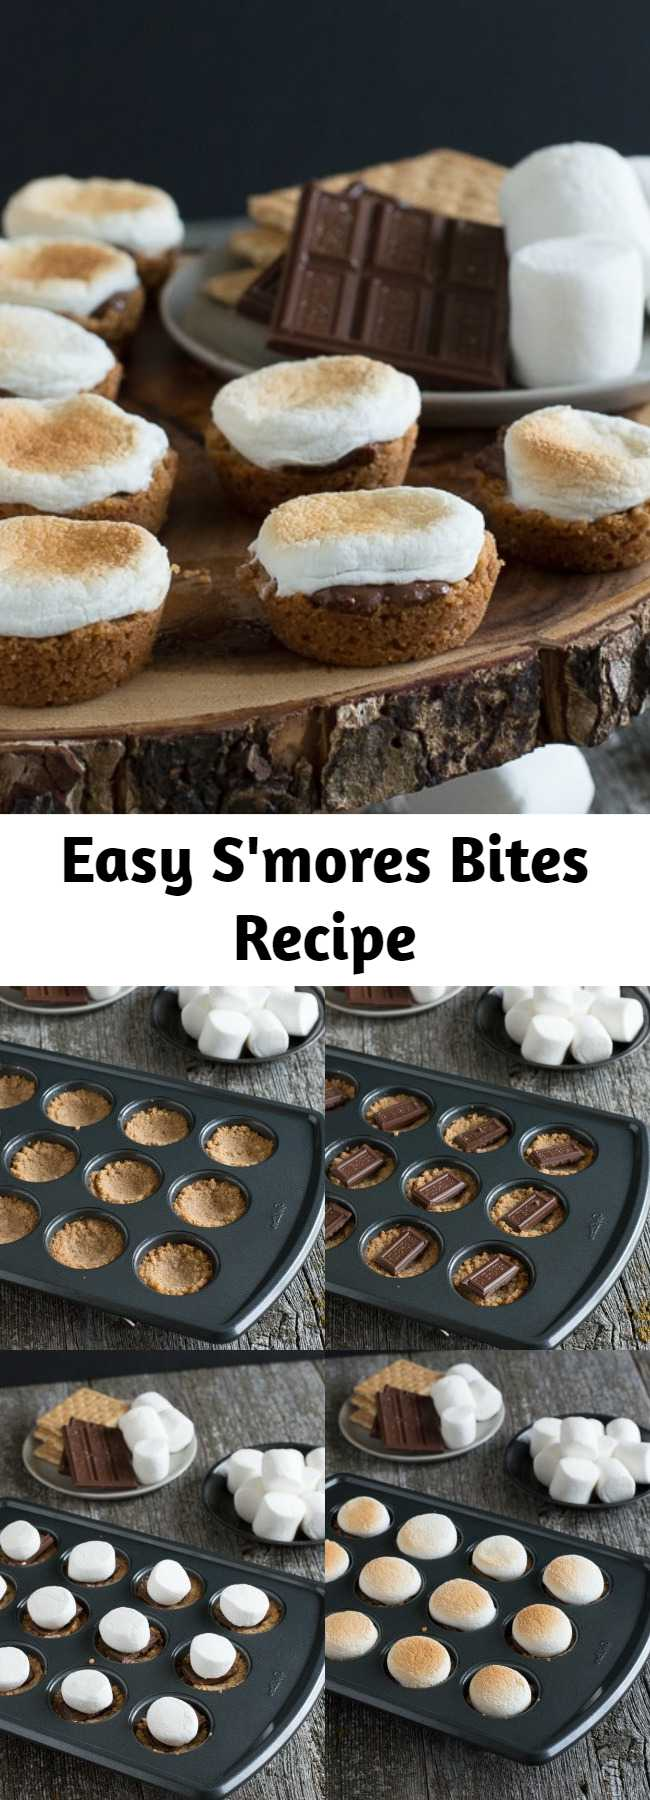 Easy S'mores Bites Recipe - An easy S'mores recipe and one of our favorite desserts to make all year round. S'mores Bites are a twist on the classic s'mores dessert, make these little S'mores Bites in the oven! #smores #smoresbites #indoorsmores #muffinpansmores